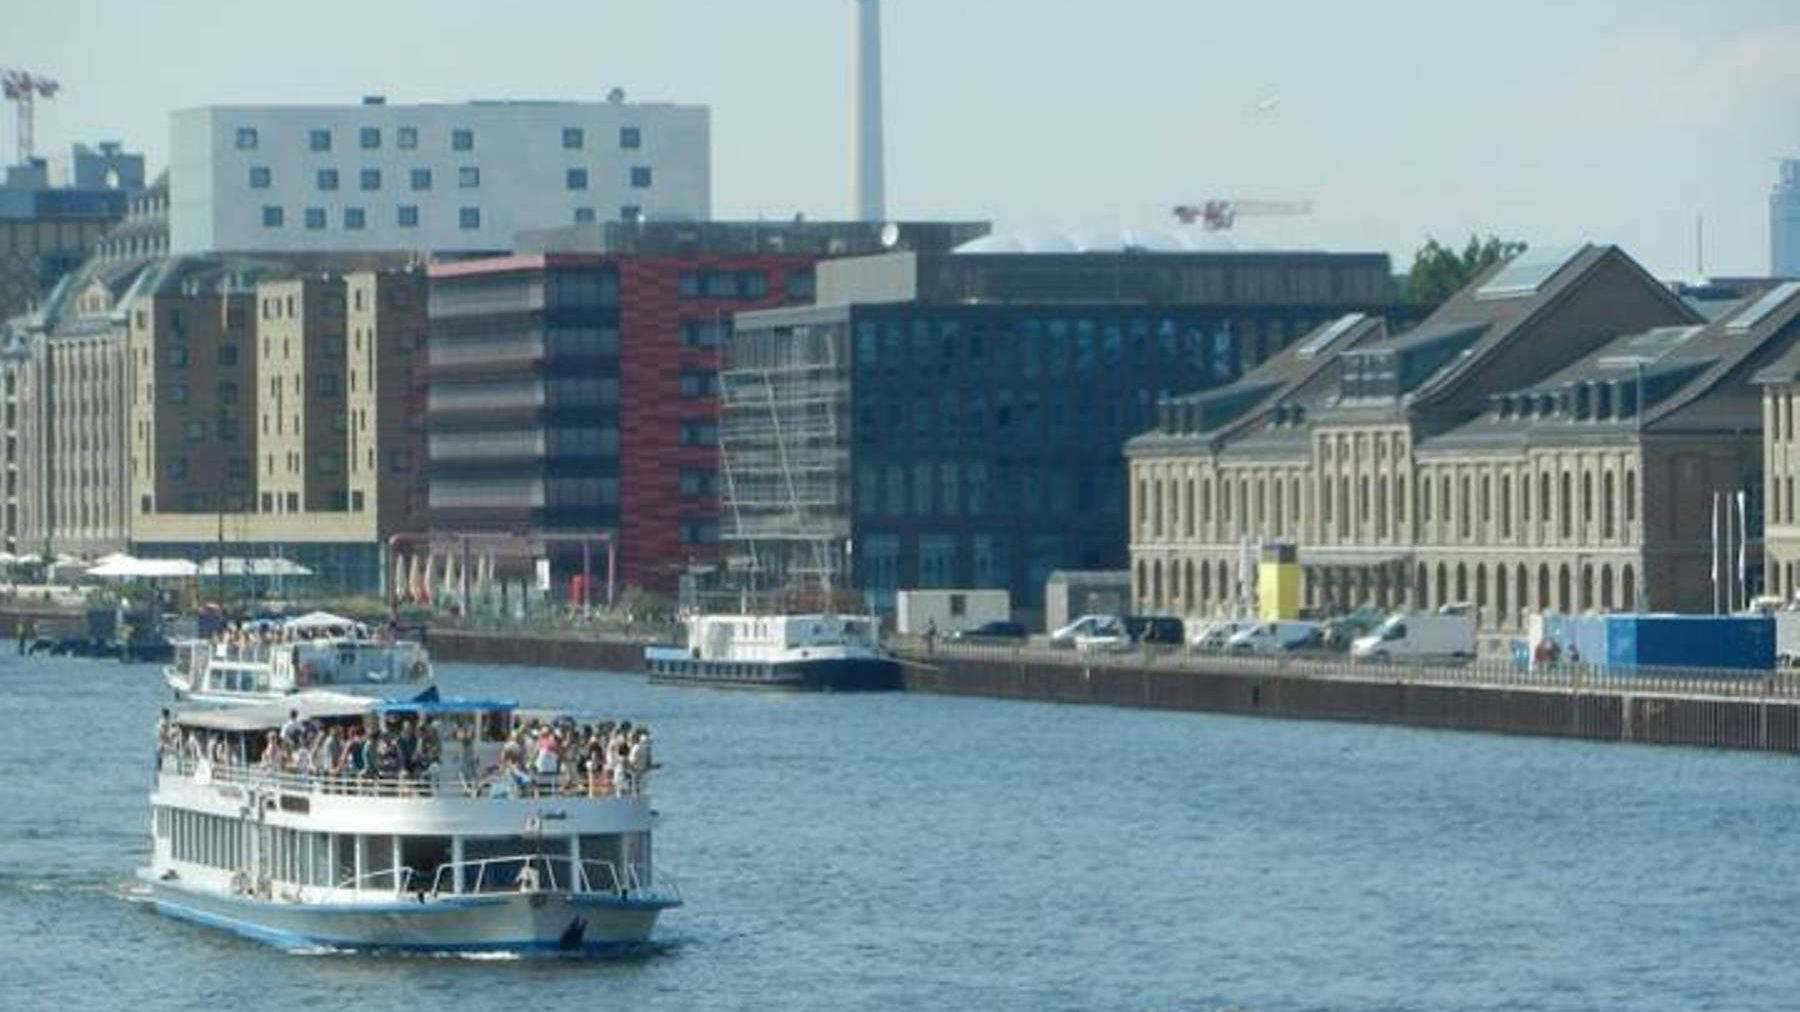 River cruise boat sailing past buildings on the banks of the Spree river in Berlin